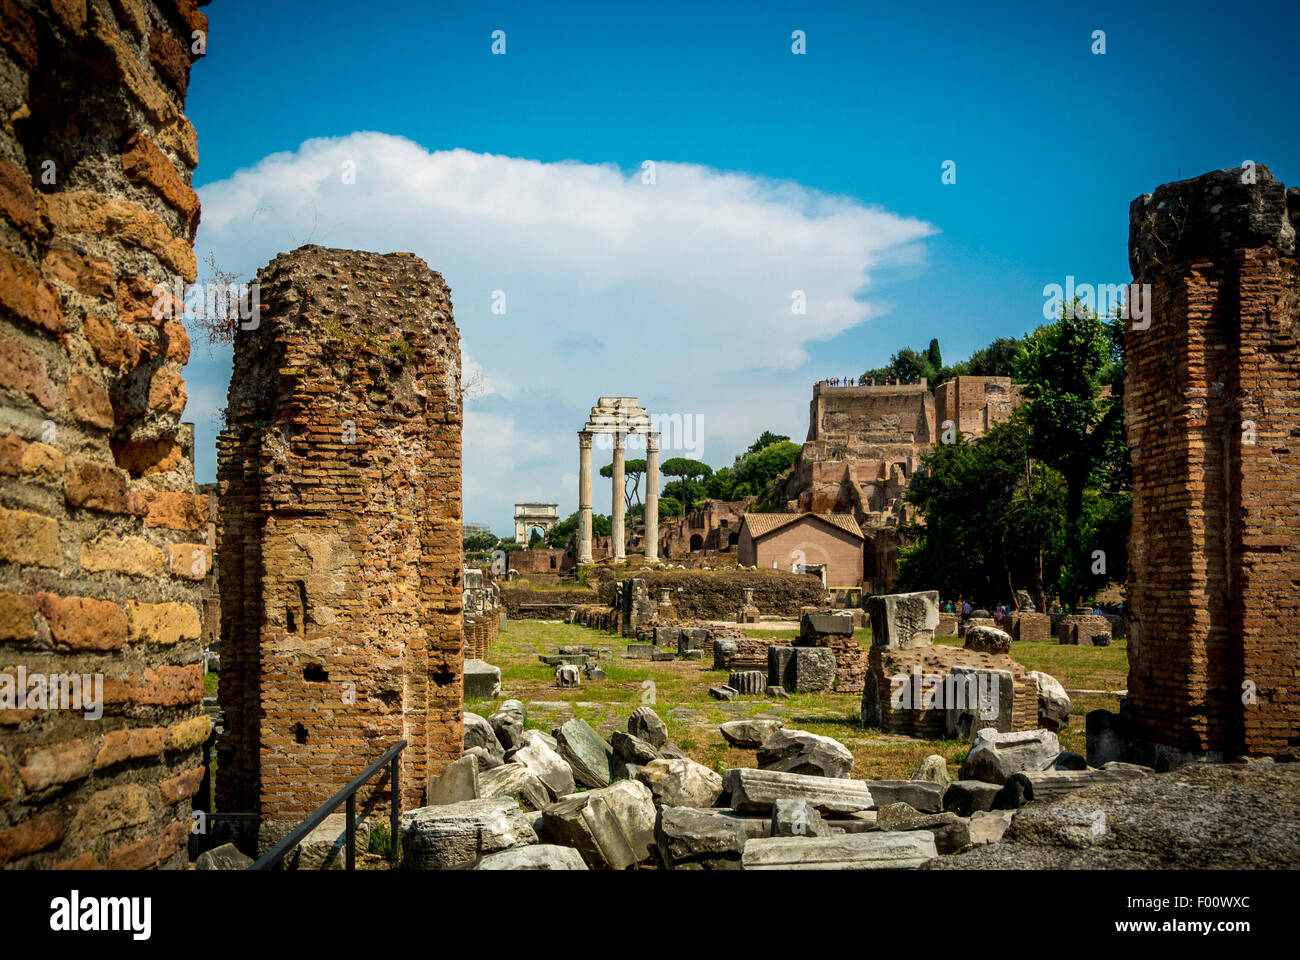 Three Pillars of the Temple of Castor and Pollux in the Roman Forum. - Stock Image